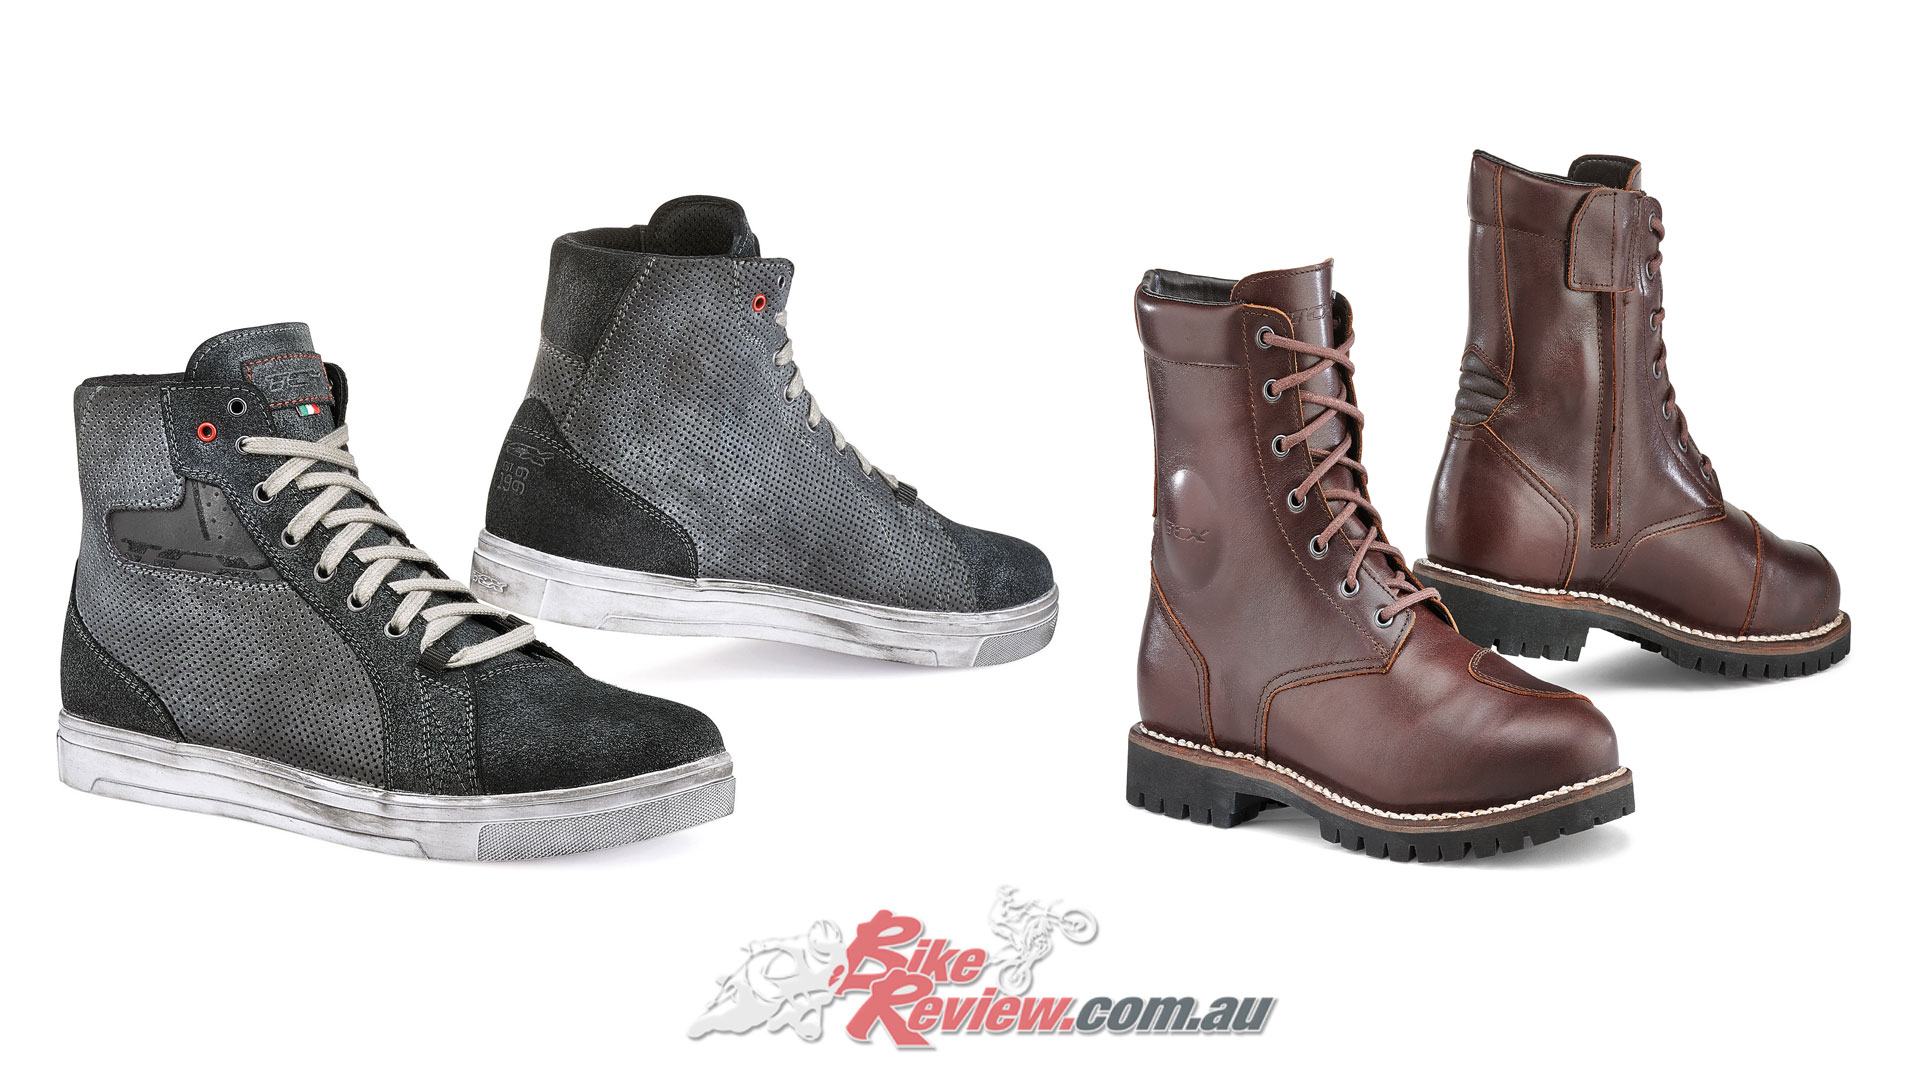 TCX Street Ace Air 'Sneakers' & Hero Waterproof Boots